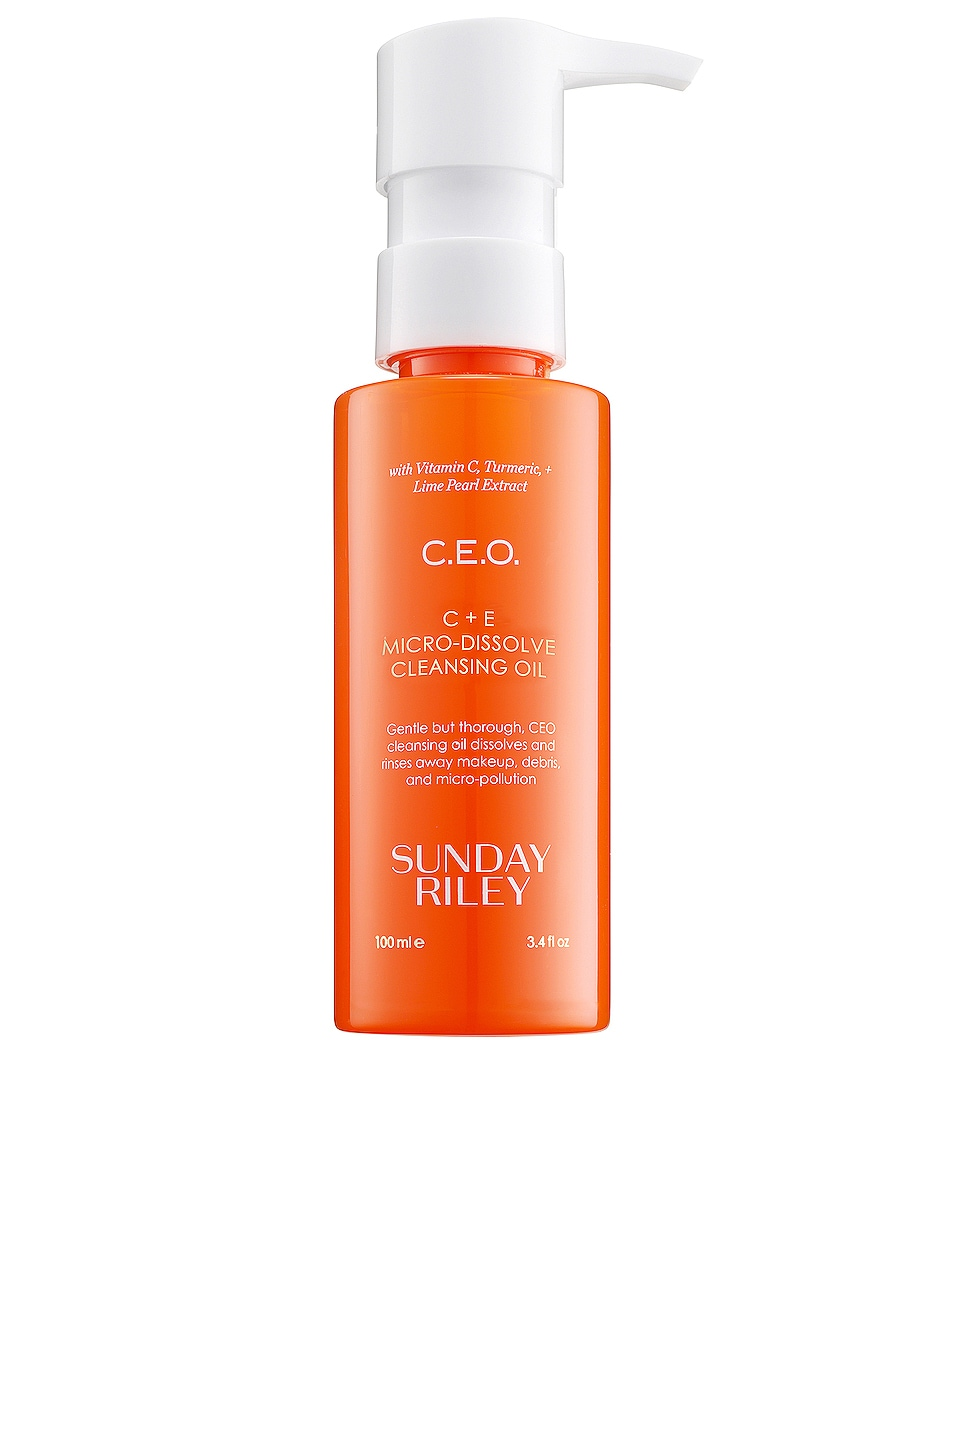 Sunday Riley C.E.O. C + E Micro-Dissolve Cleansing Oil